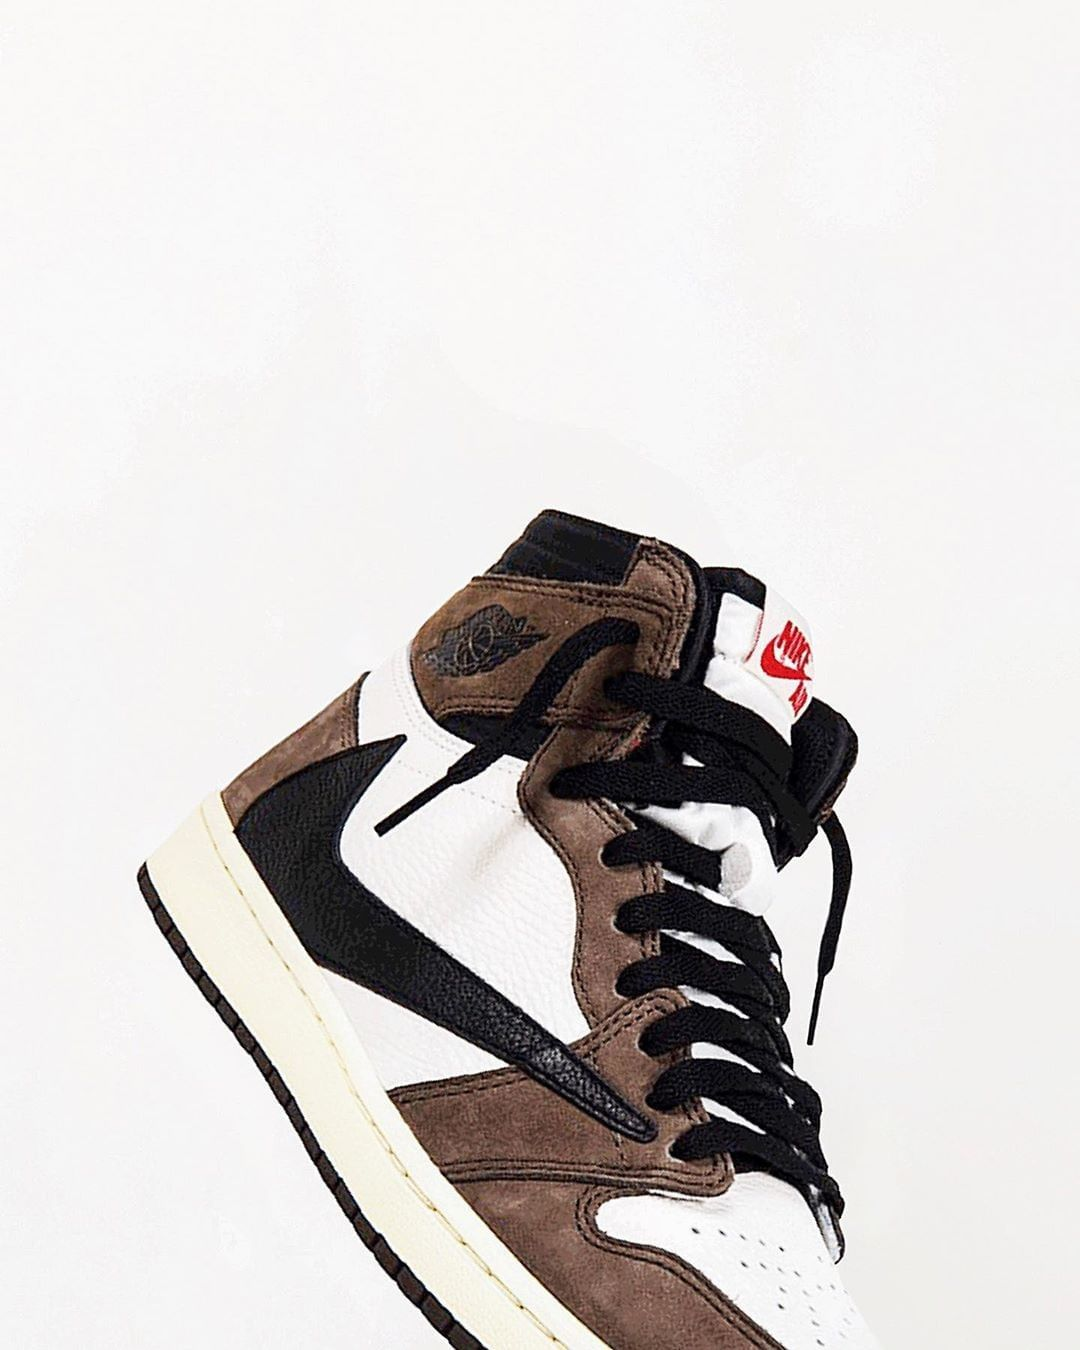 La Air Jordan 1 Retro High Travis Scott Cactus Jack Est Disponible Sur Wethenew Com Airbjordan W Sneakers Hummel Sneaker Air Jordans